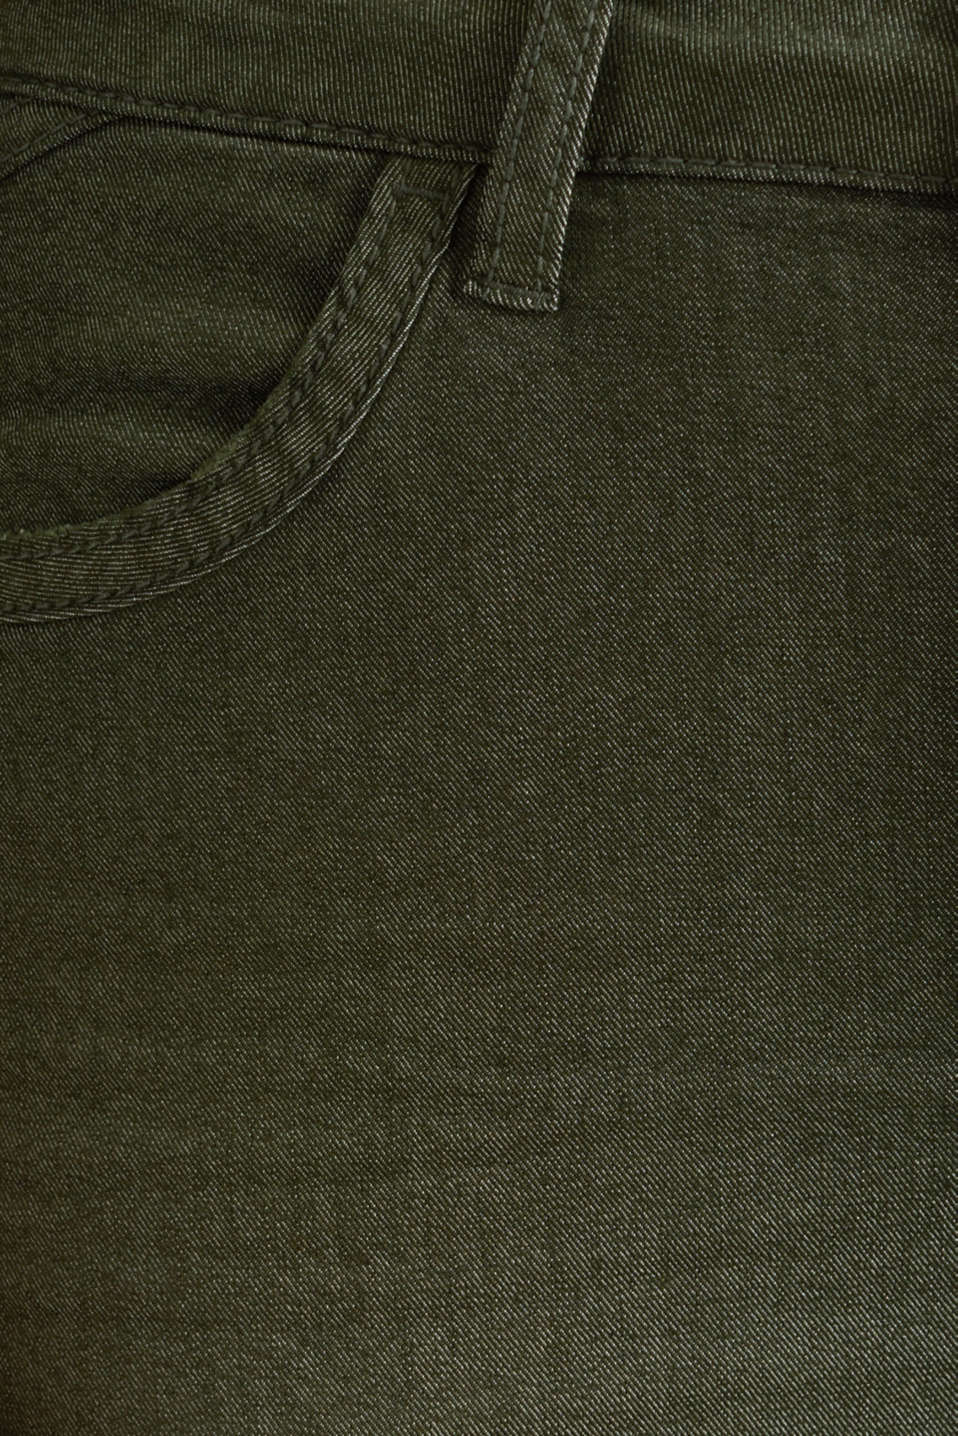 Ankle-length stretch trousers, KHAKI GREEN, detail image number 4